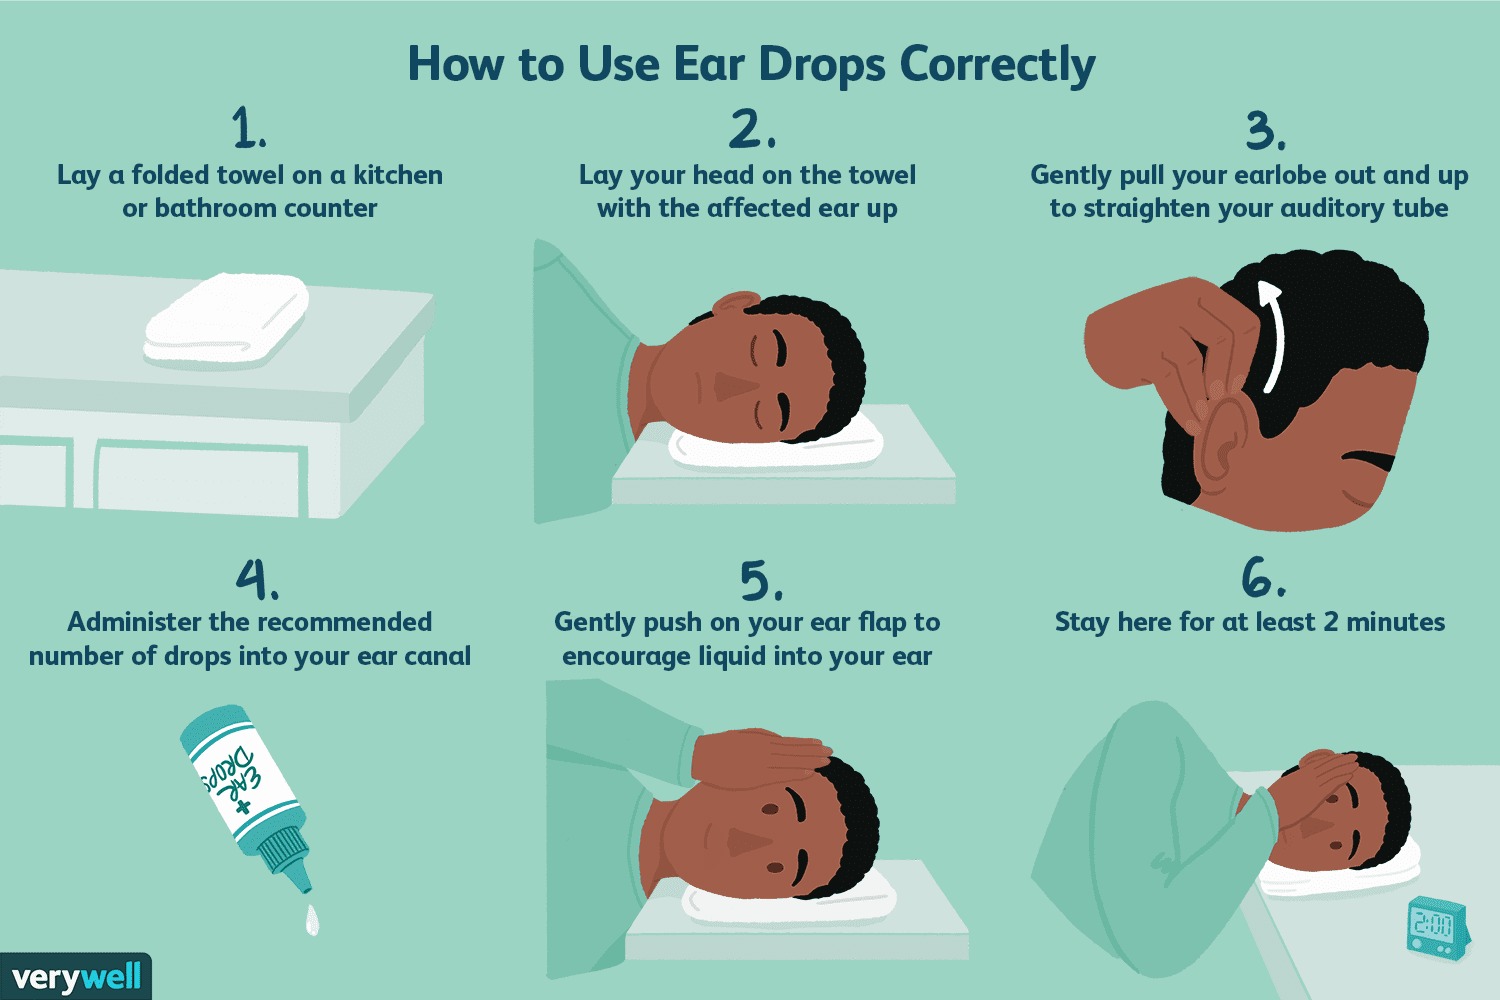 How to Use Ear Drops Correctly